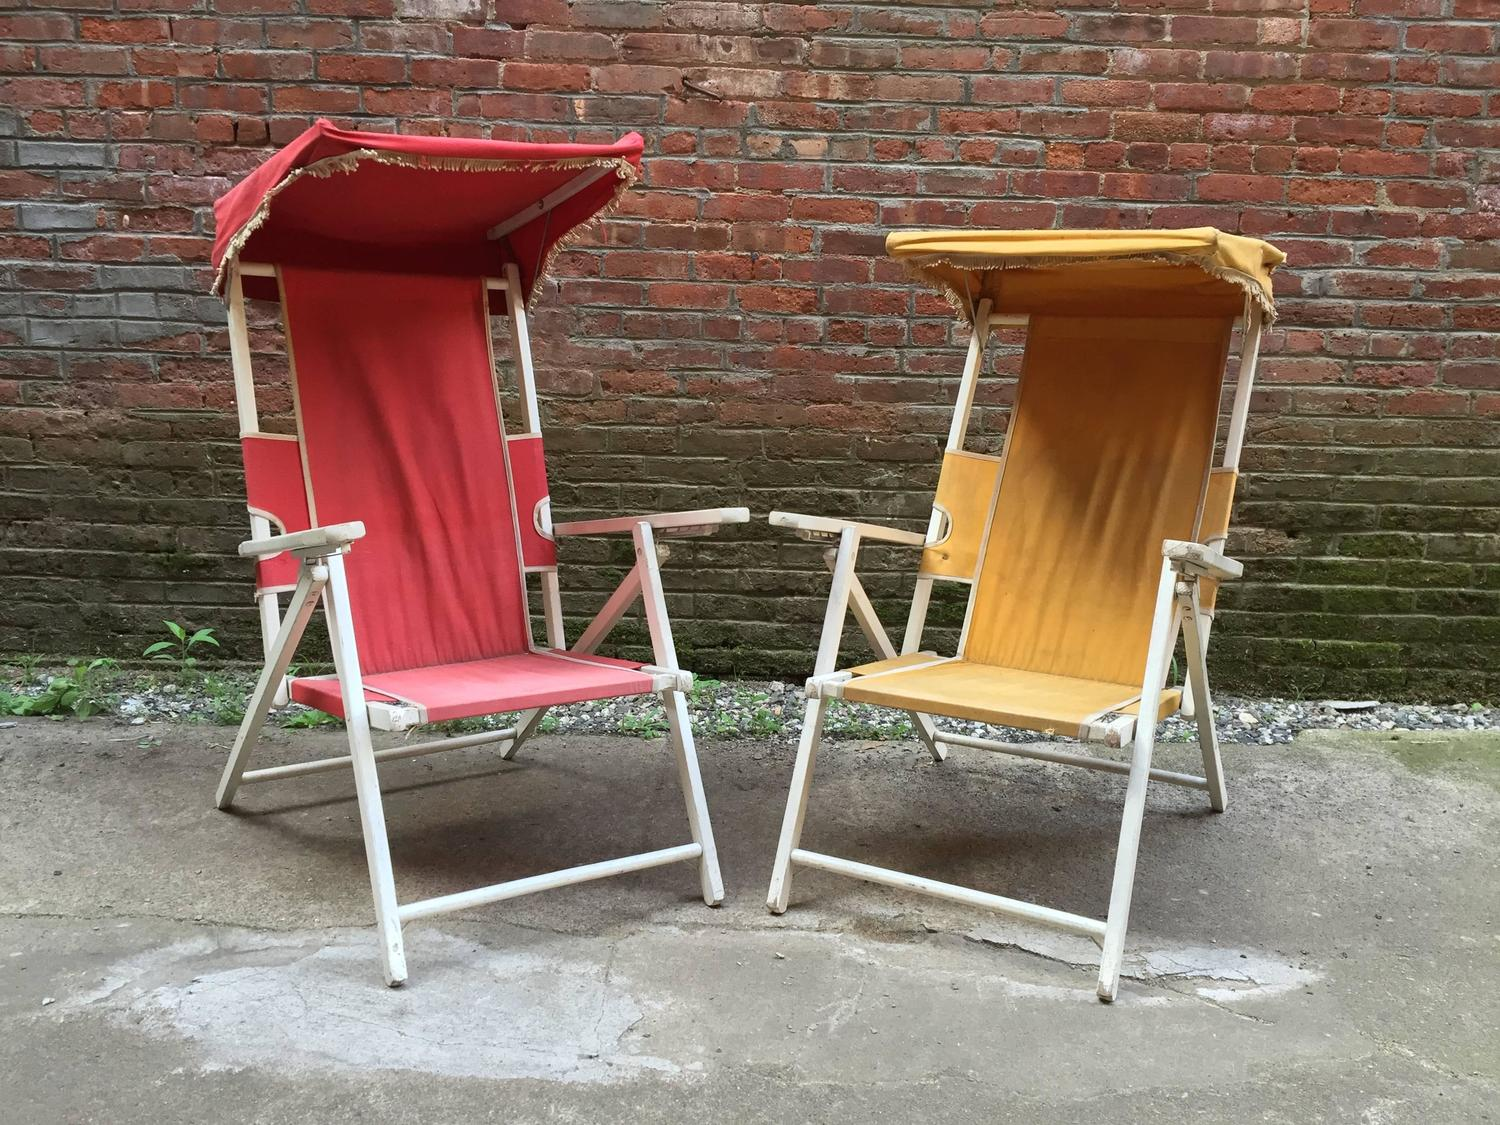 Cabana Chair Vintage Hamptons Folding Cabana Chairs For Sale At 1stdibs